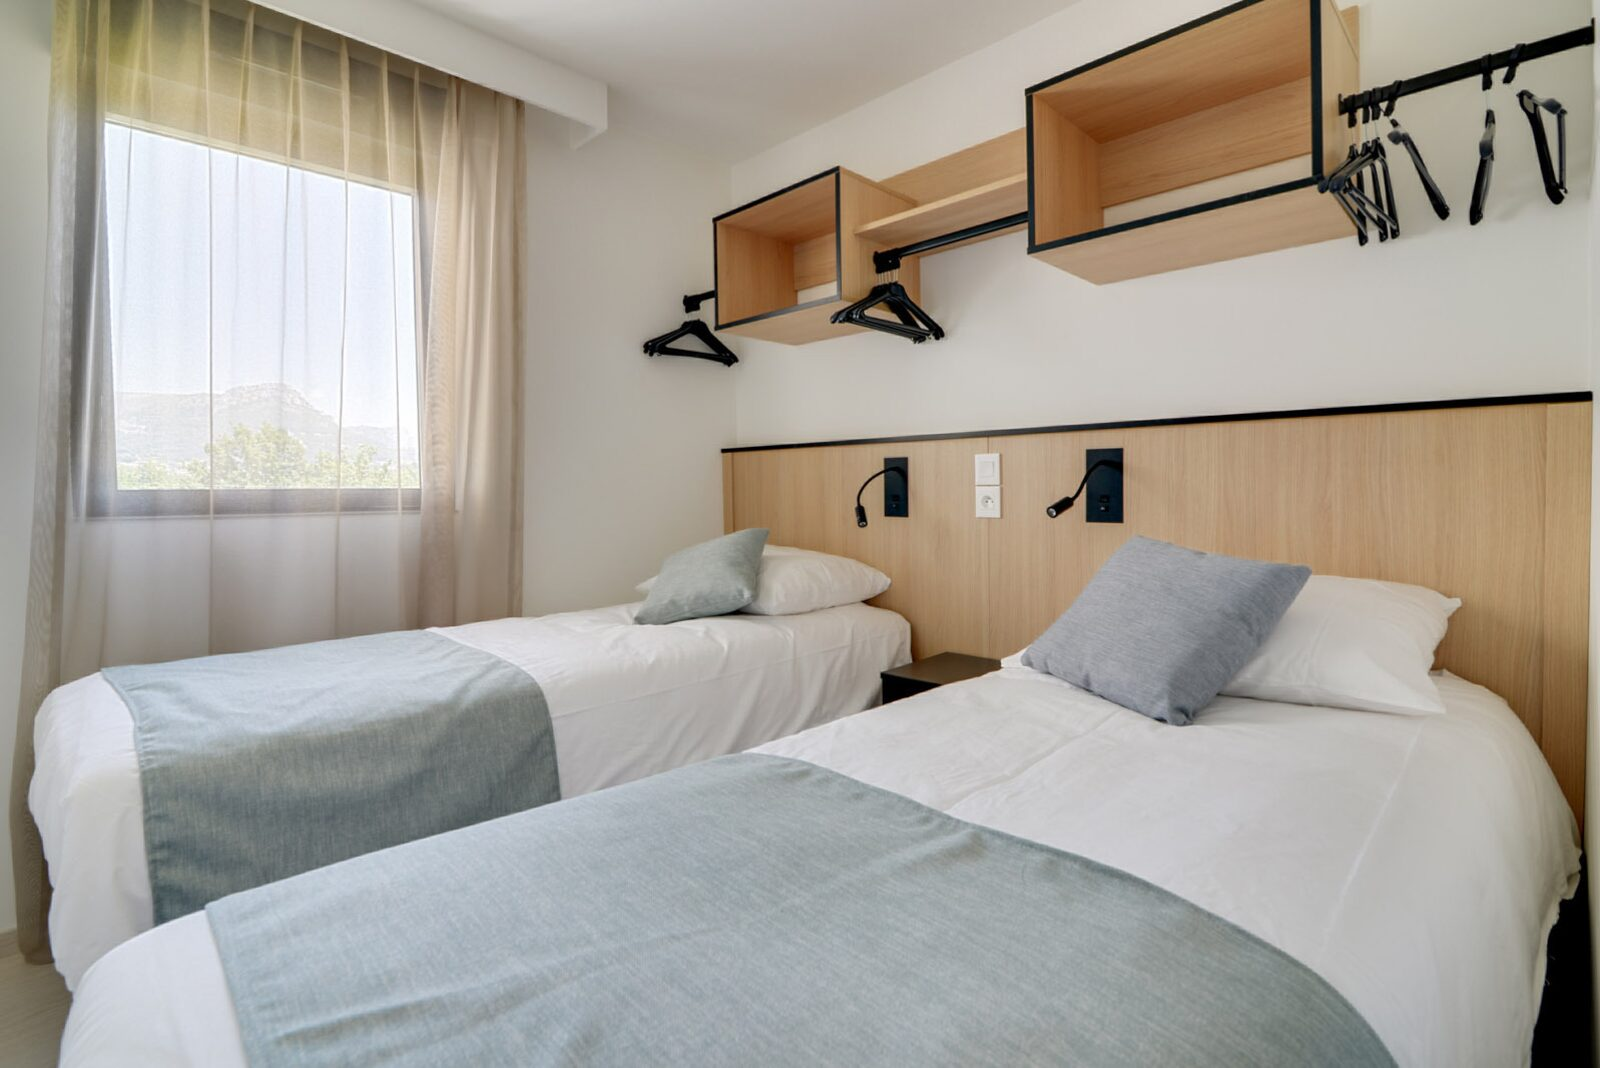 New deluxe suite for 4 people with 2 bedrooms - double bed and single beds